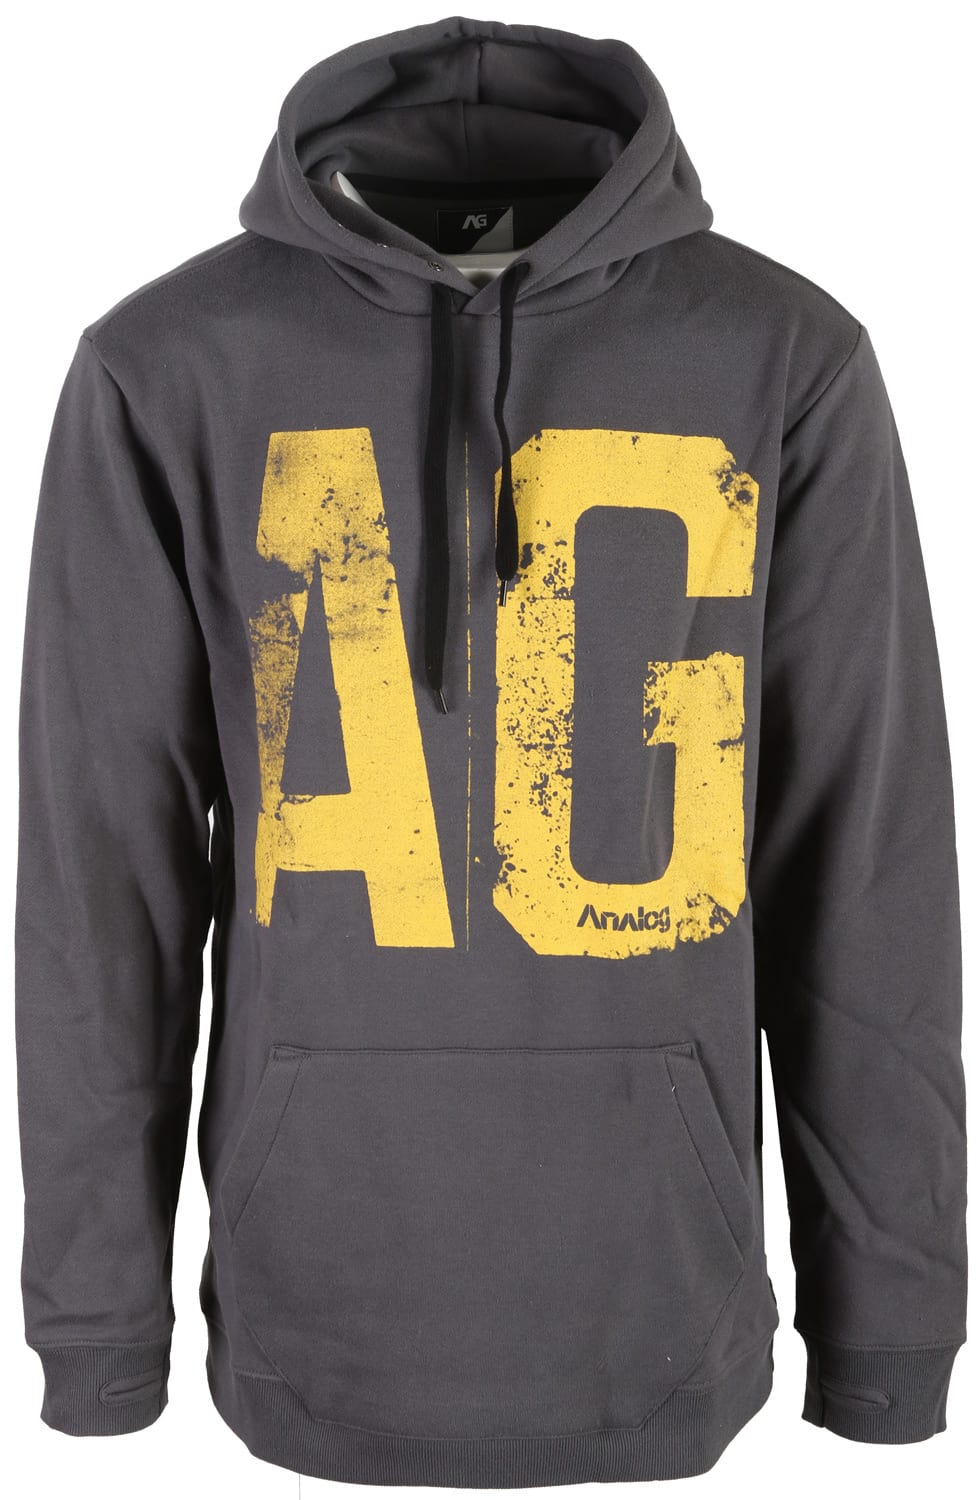 Image of Analog Agent Hoodie